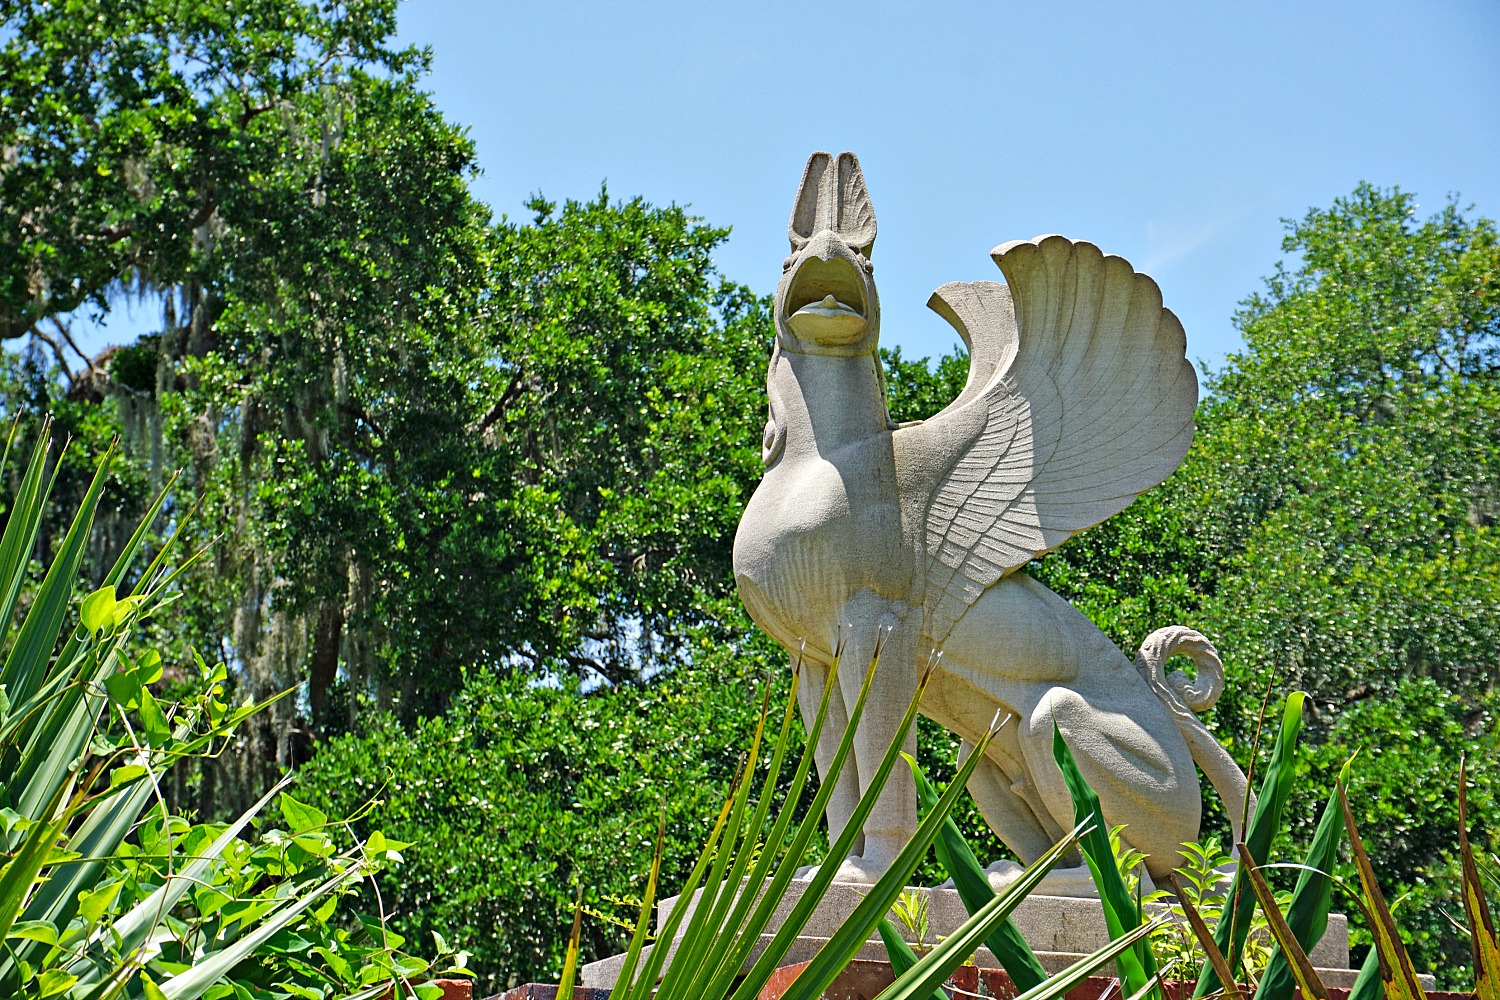 Brookgreen Gardens, South Carolina. Outdoors art galery.